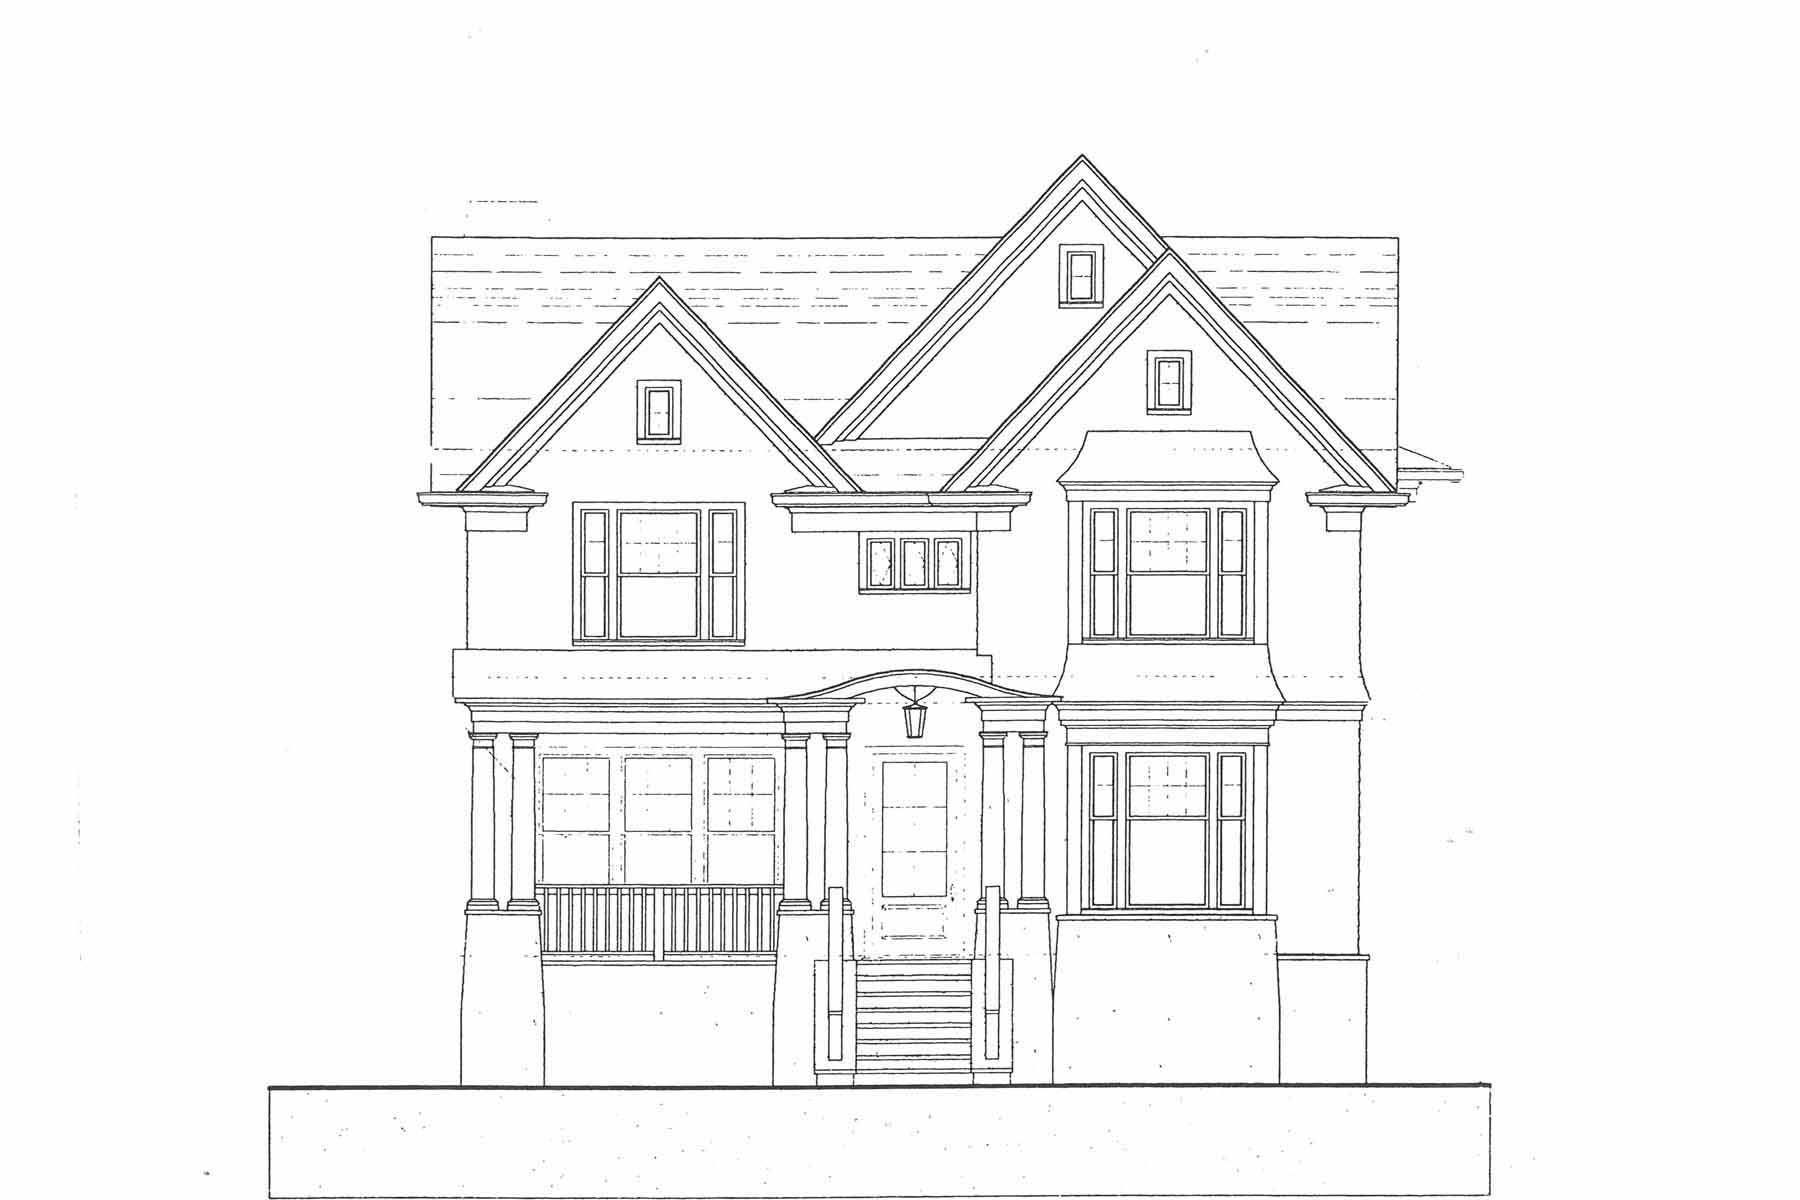 Moradia para Venda às New Construction in Desirable Morningside Neighborhood 1496 Lanier Place NE Morningside, Atlanta, Geórgia, 30306 Estados Unidos